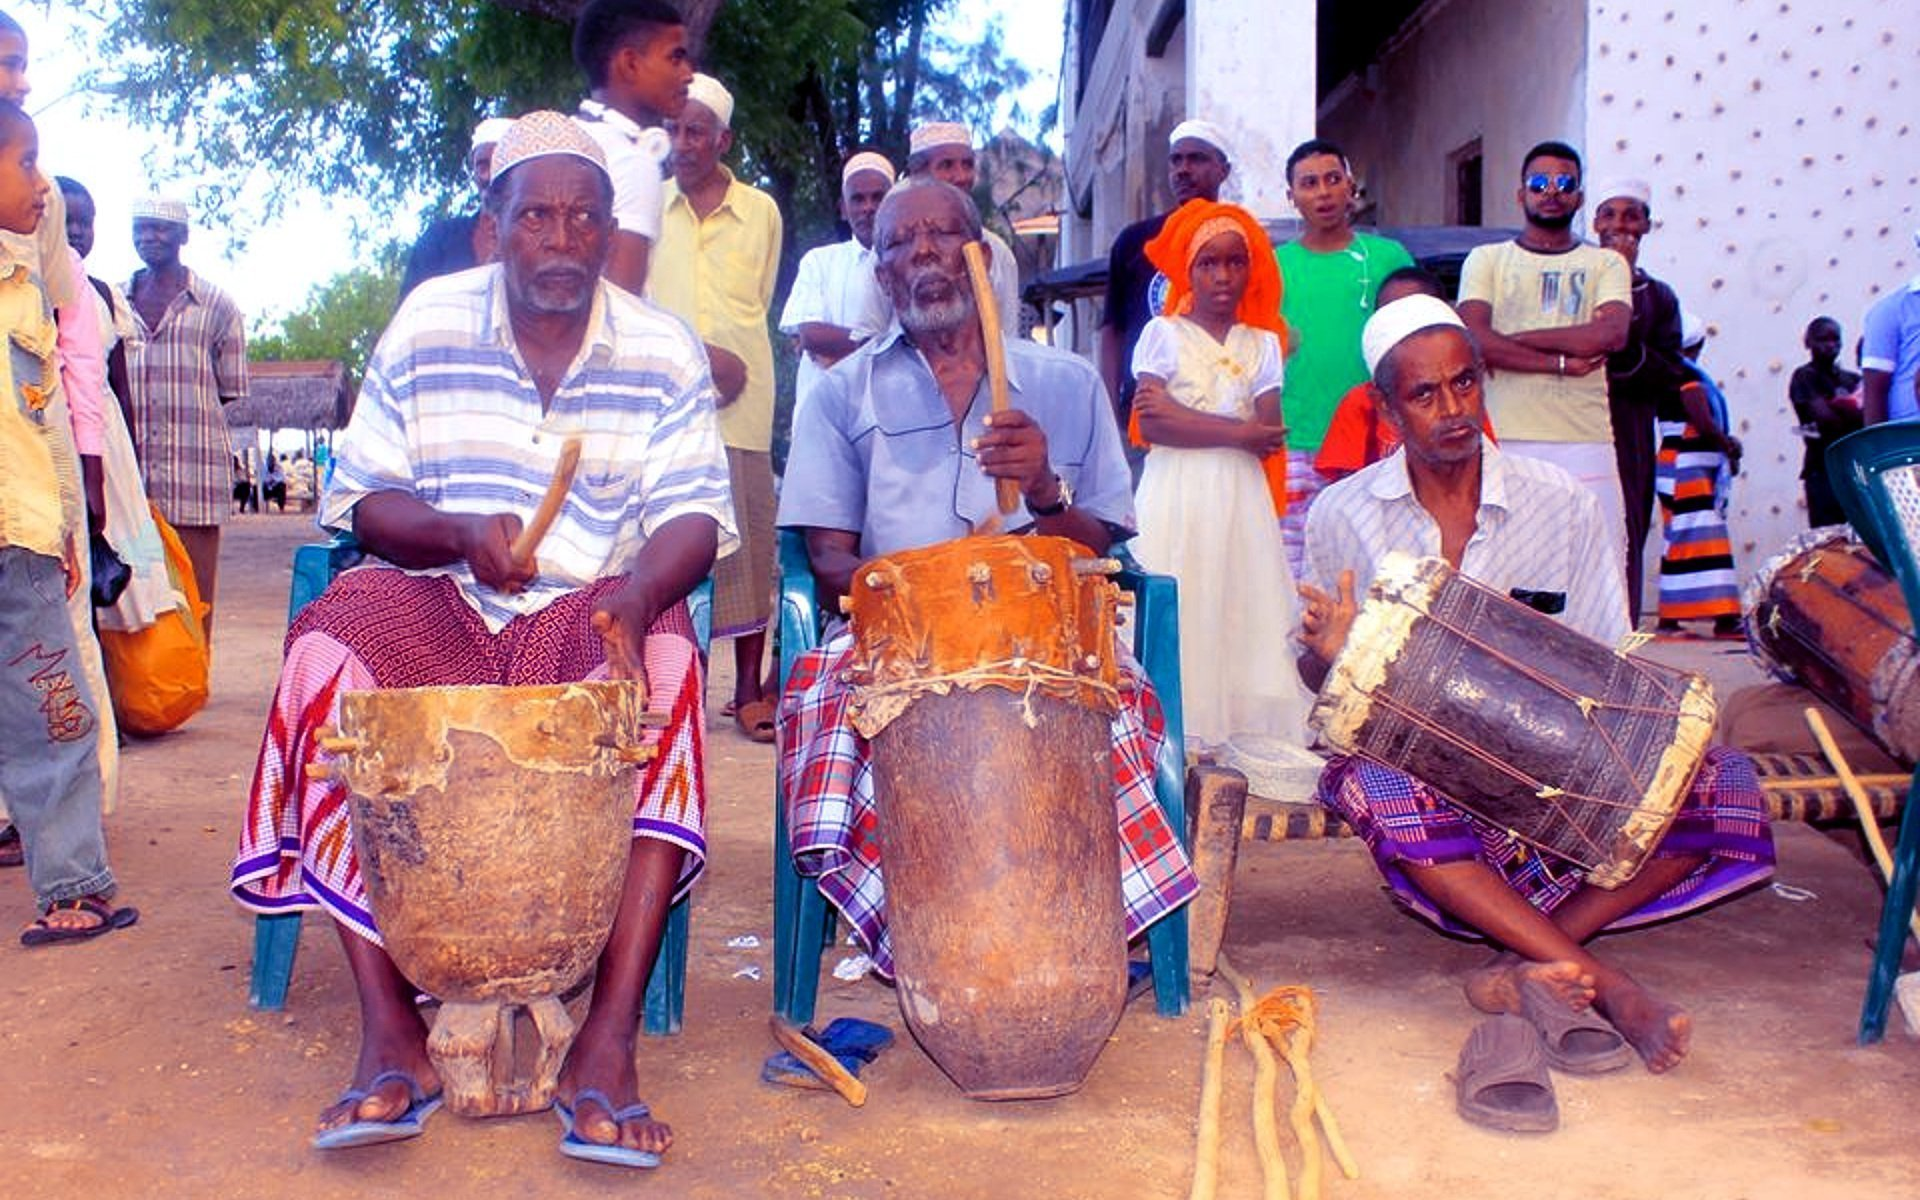 The Bajuni of Kenya once occupied the Bajuni Islands. Today they live in Lamu, just north of Tana River where they fish, trade and farm. Photo courtesy of AllBajuni.com